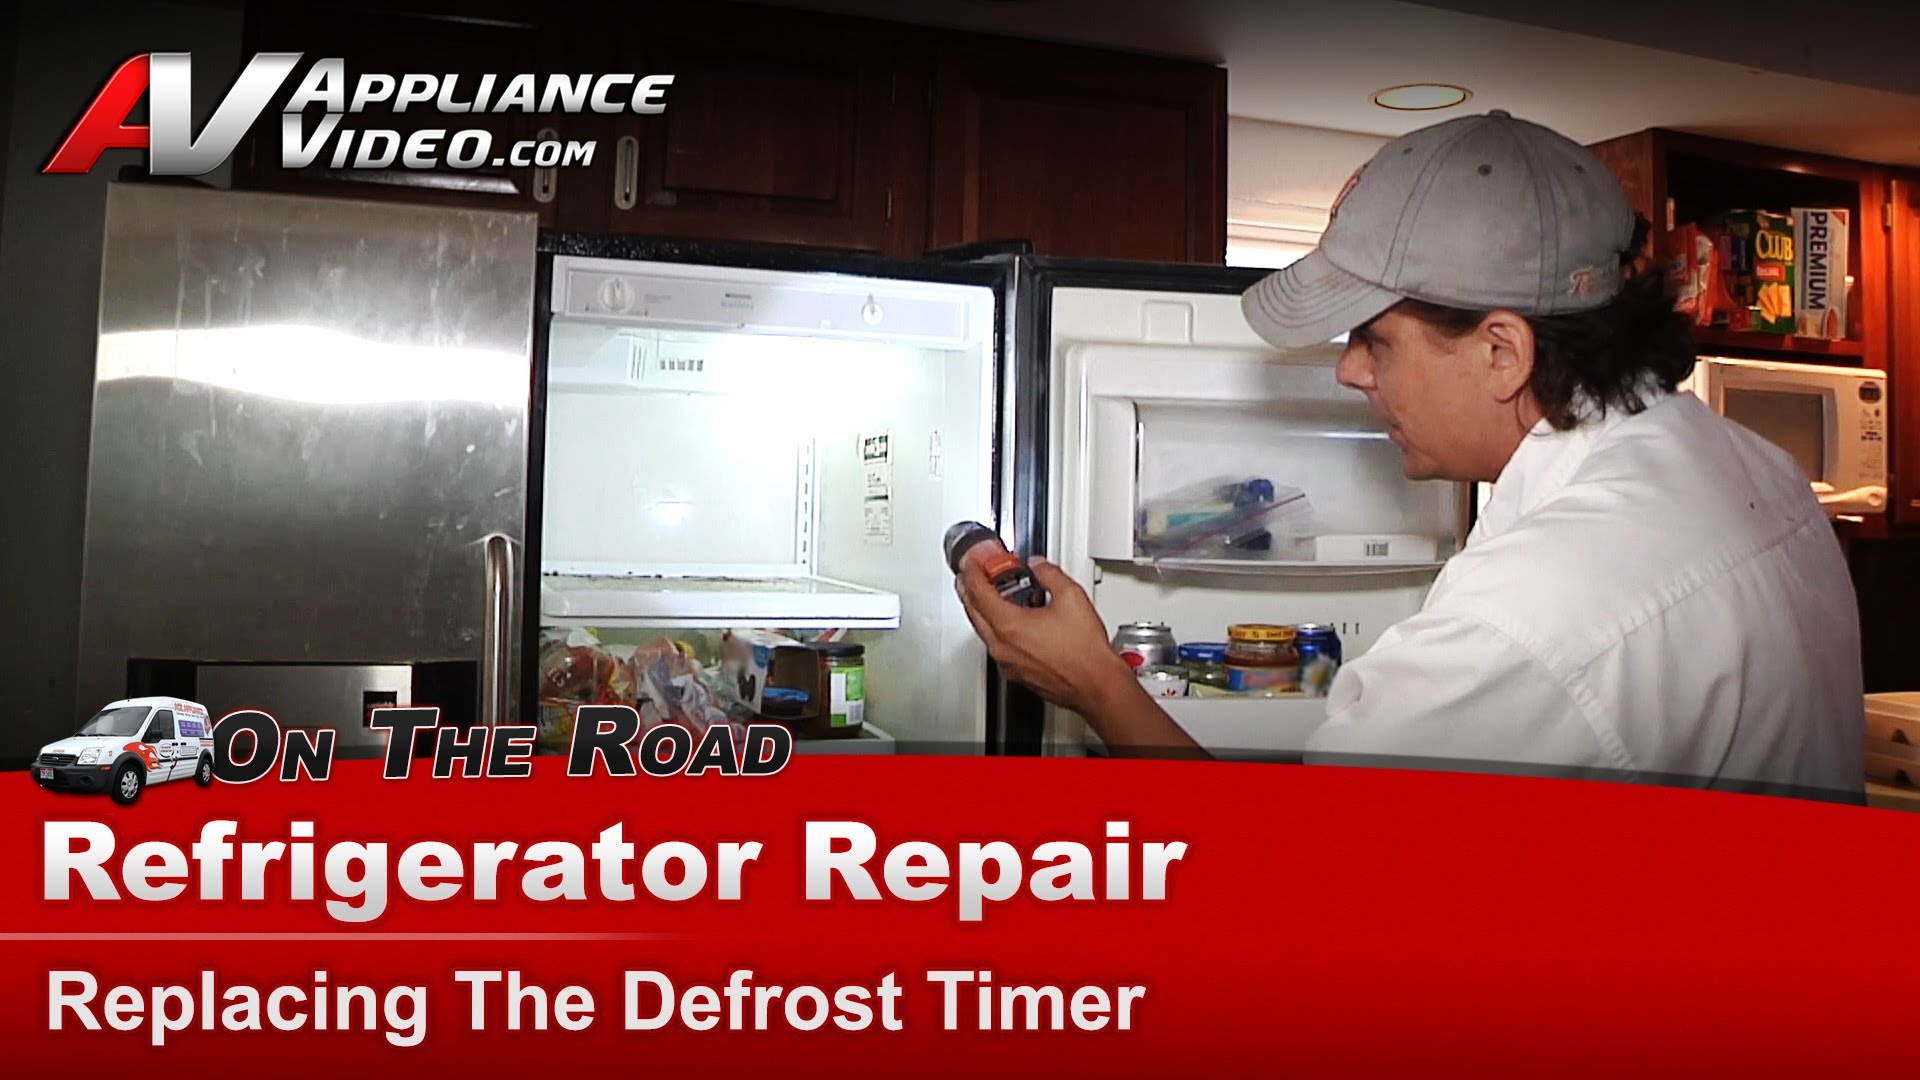 Frigidaire FRS24WSCB1 Refrigerator Repair  Replacing the defrost timer  Timer  Appliance Video